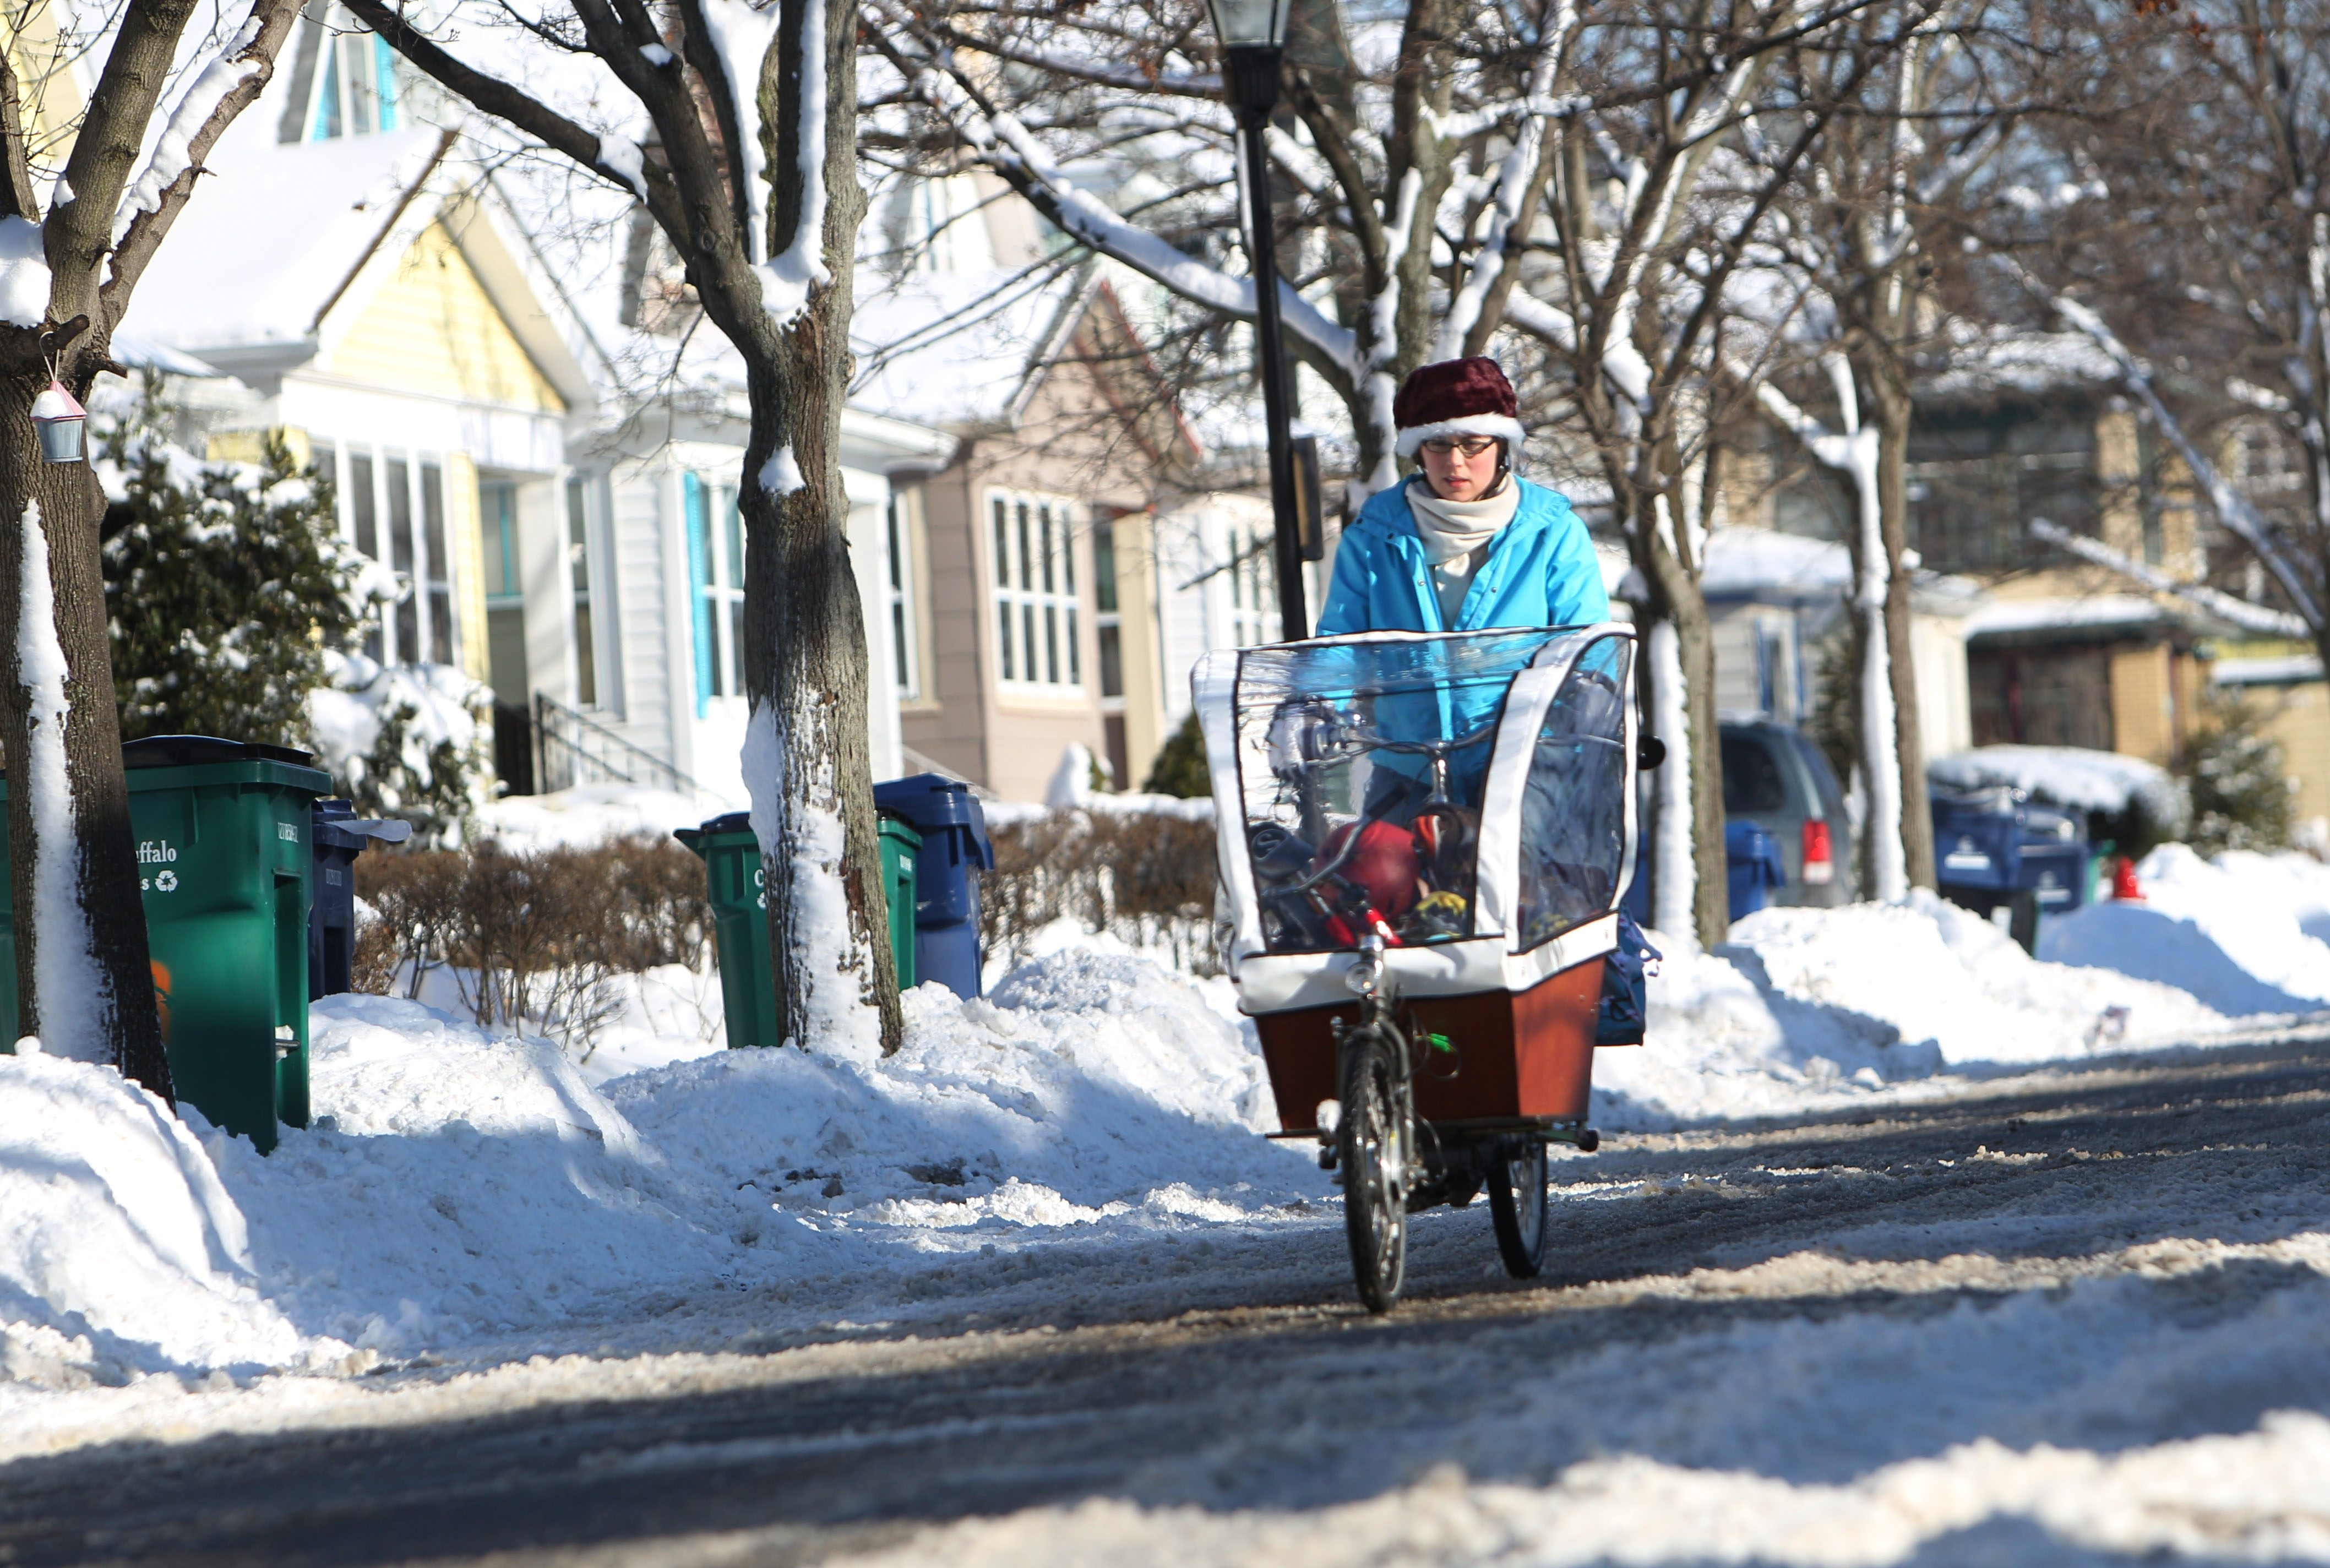 Stacy Bisker rides home from the zoo with her son Oliver Patterson, 4, Thursday, Jan. 9, 2014.  The family doesn't own a car and this is their first winter in Buffalo, so Stacy, her husband and four children are learning how to navigate the snowy streets with a bike.  Her bike is a cargo bike with a canopy to protect from the wind rain and snow. She arrives on her street.